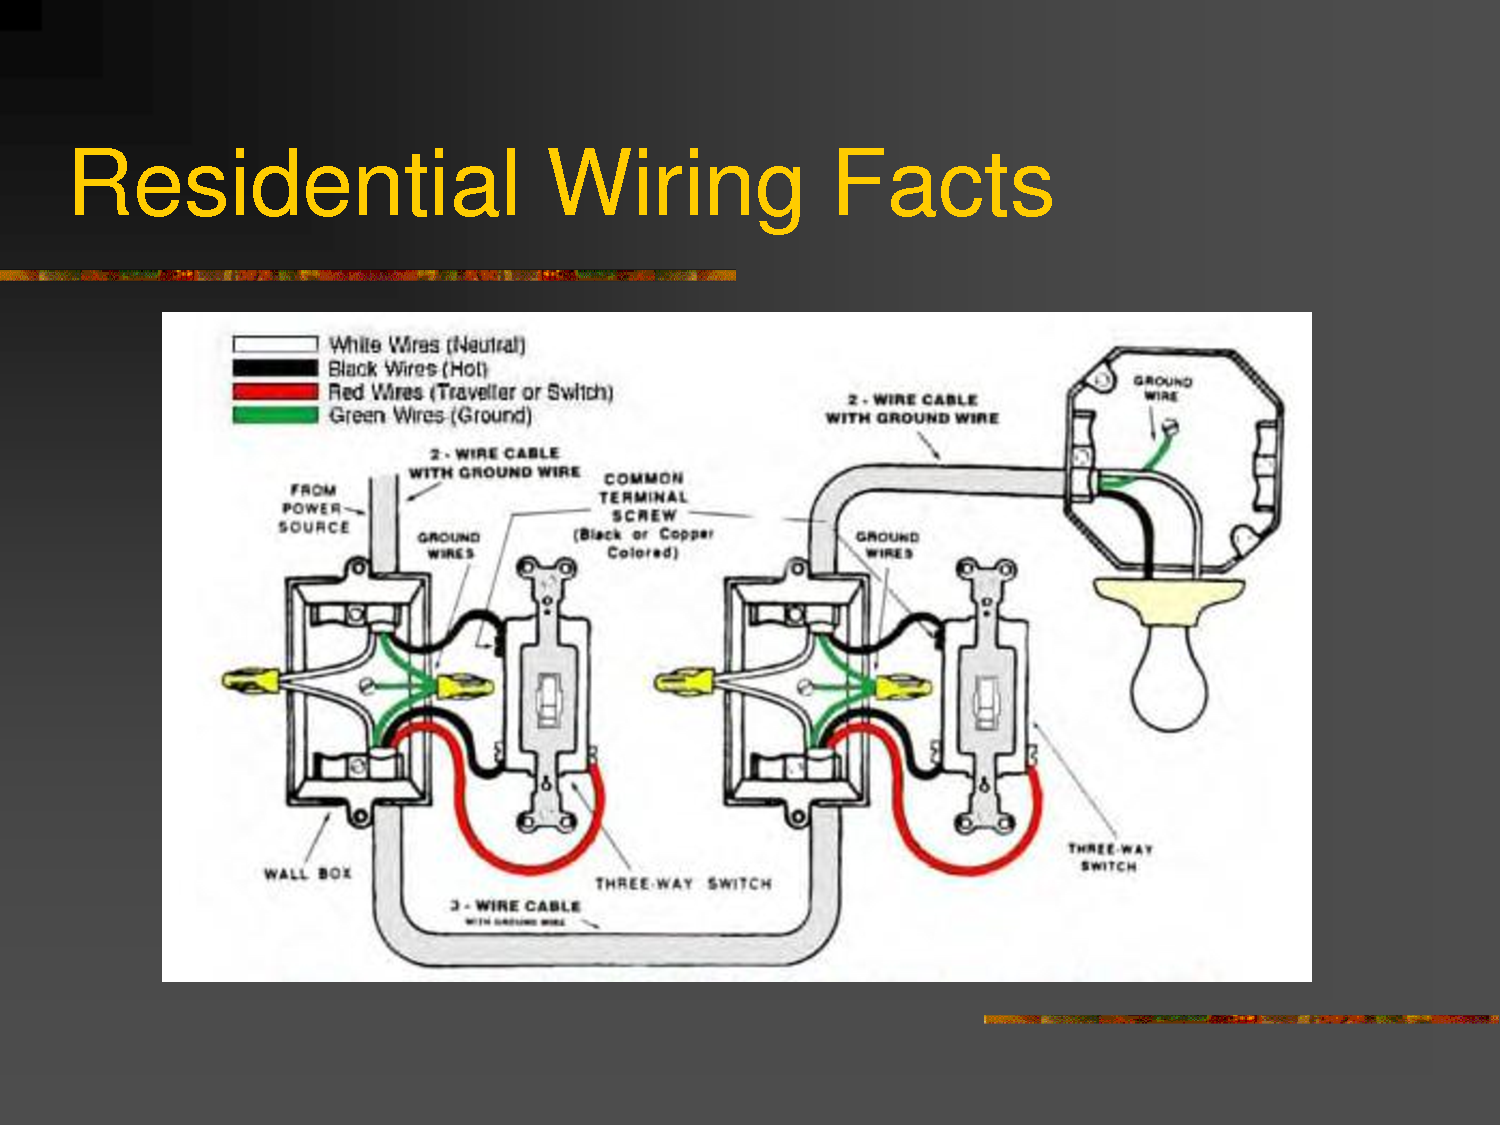 house wiring diagram in philippines house wiring diagram in autocad